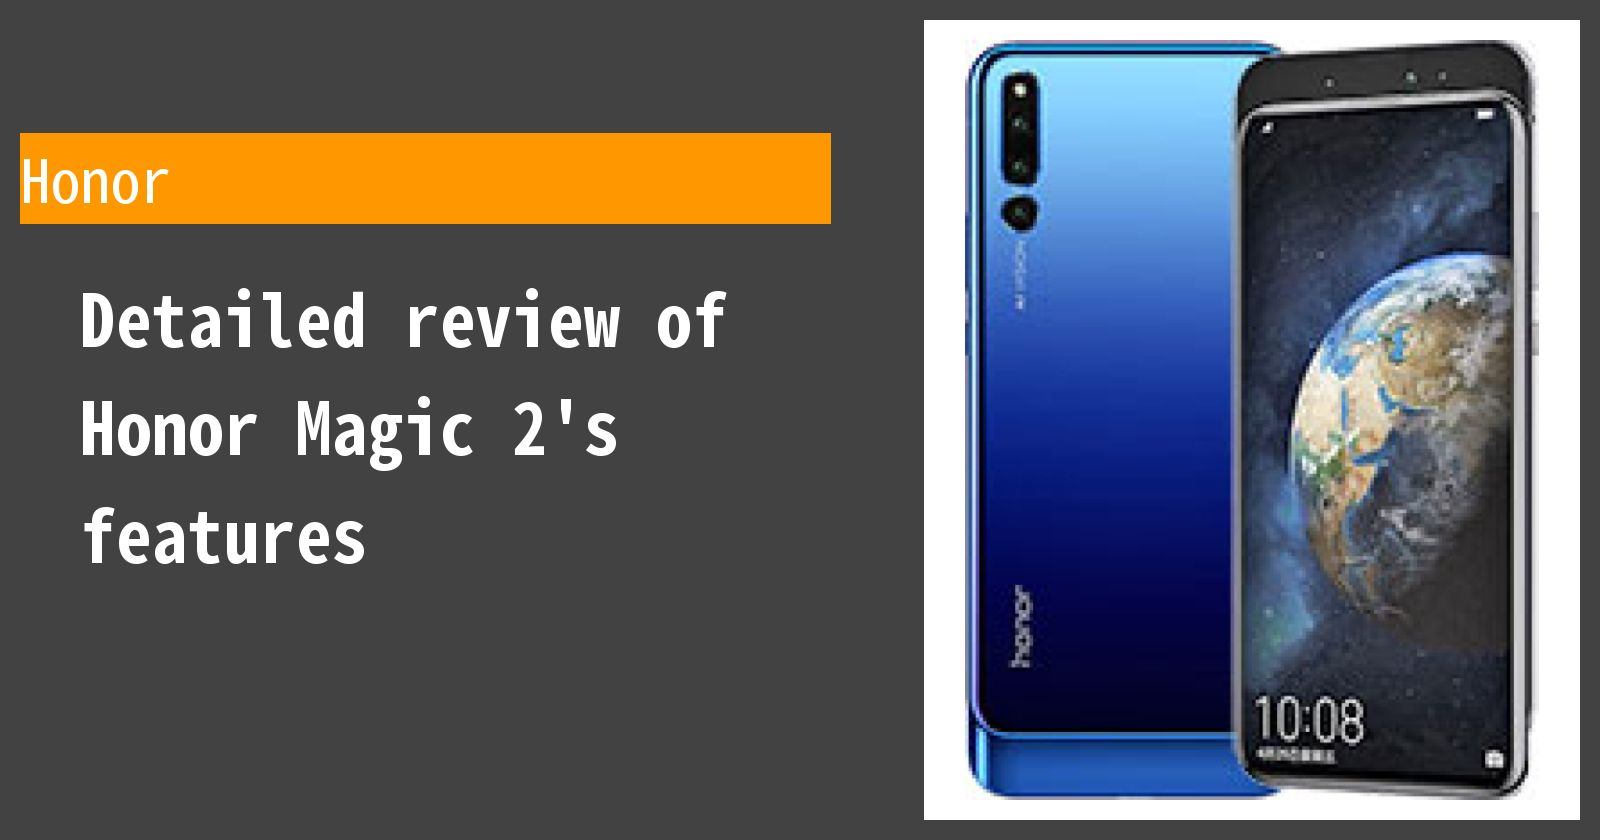 Detailed review of Honor Magic 2's features